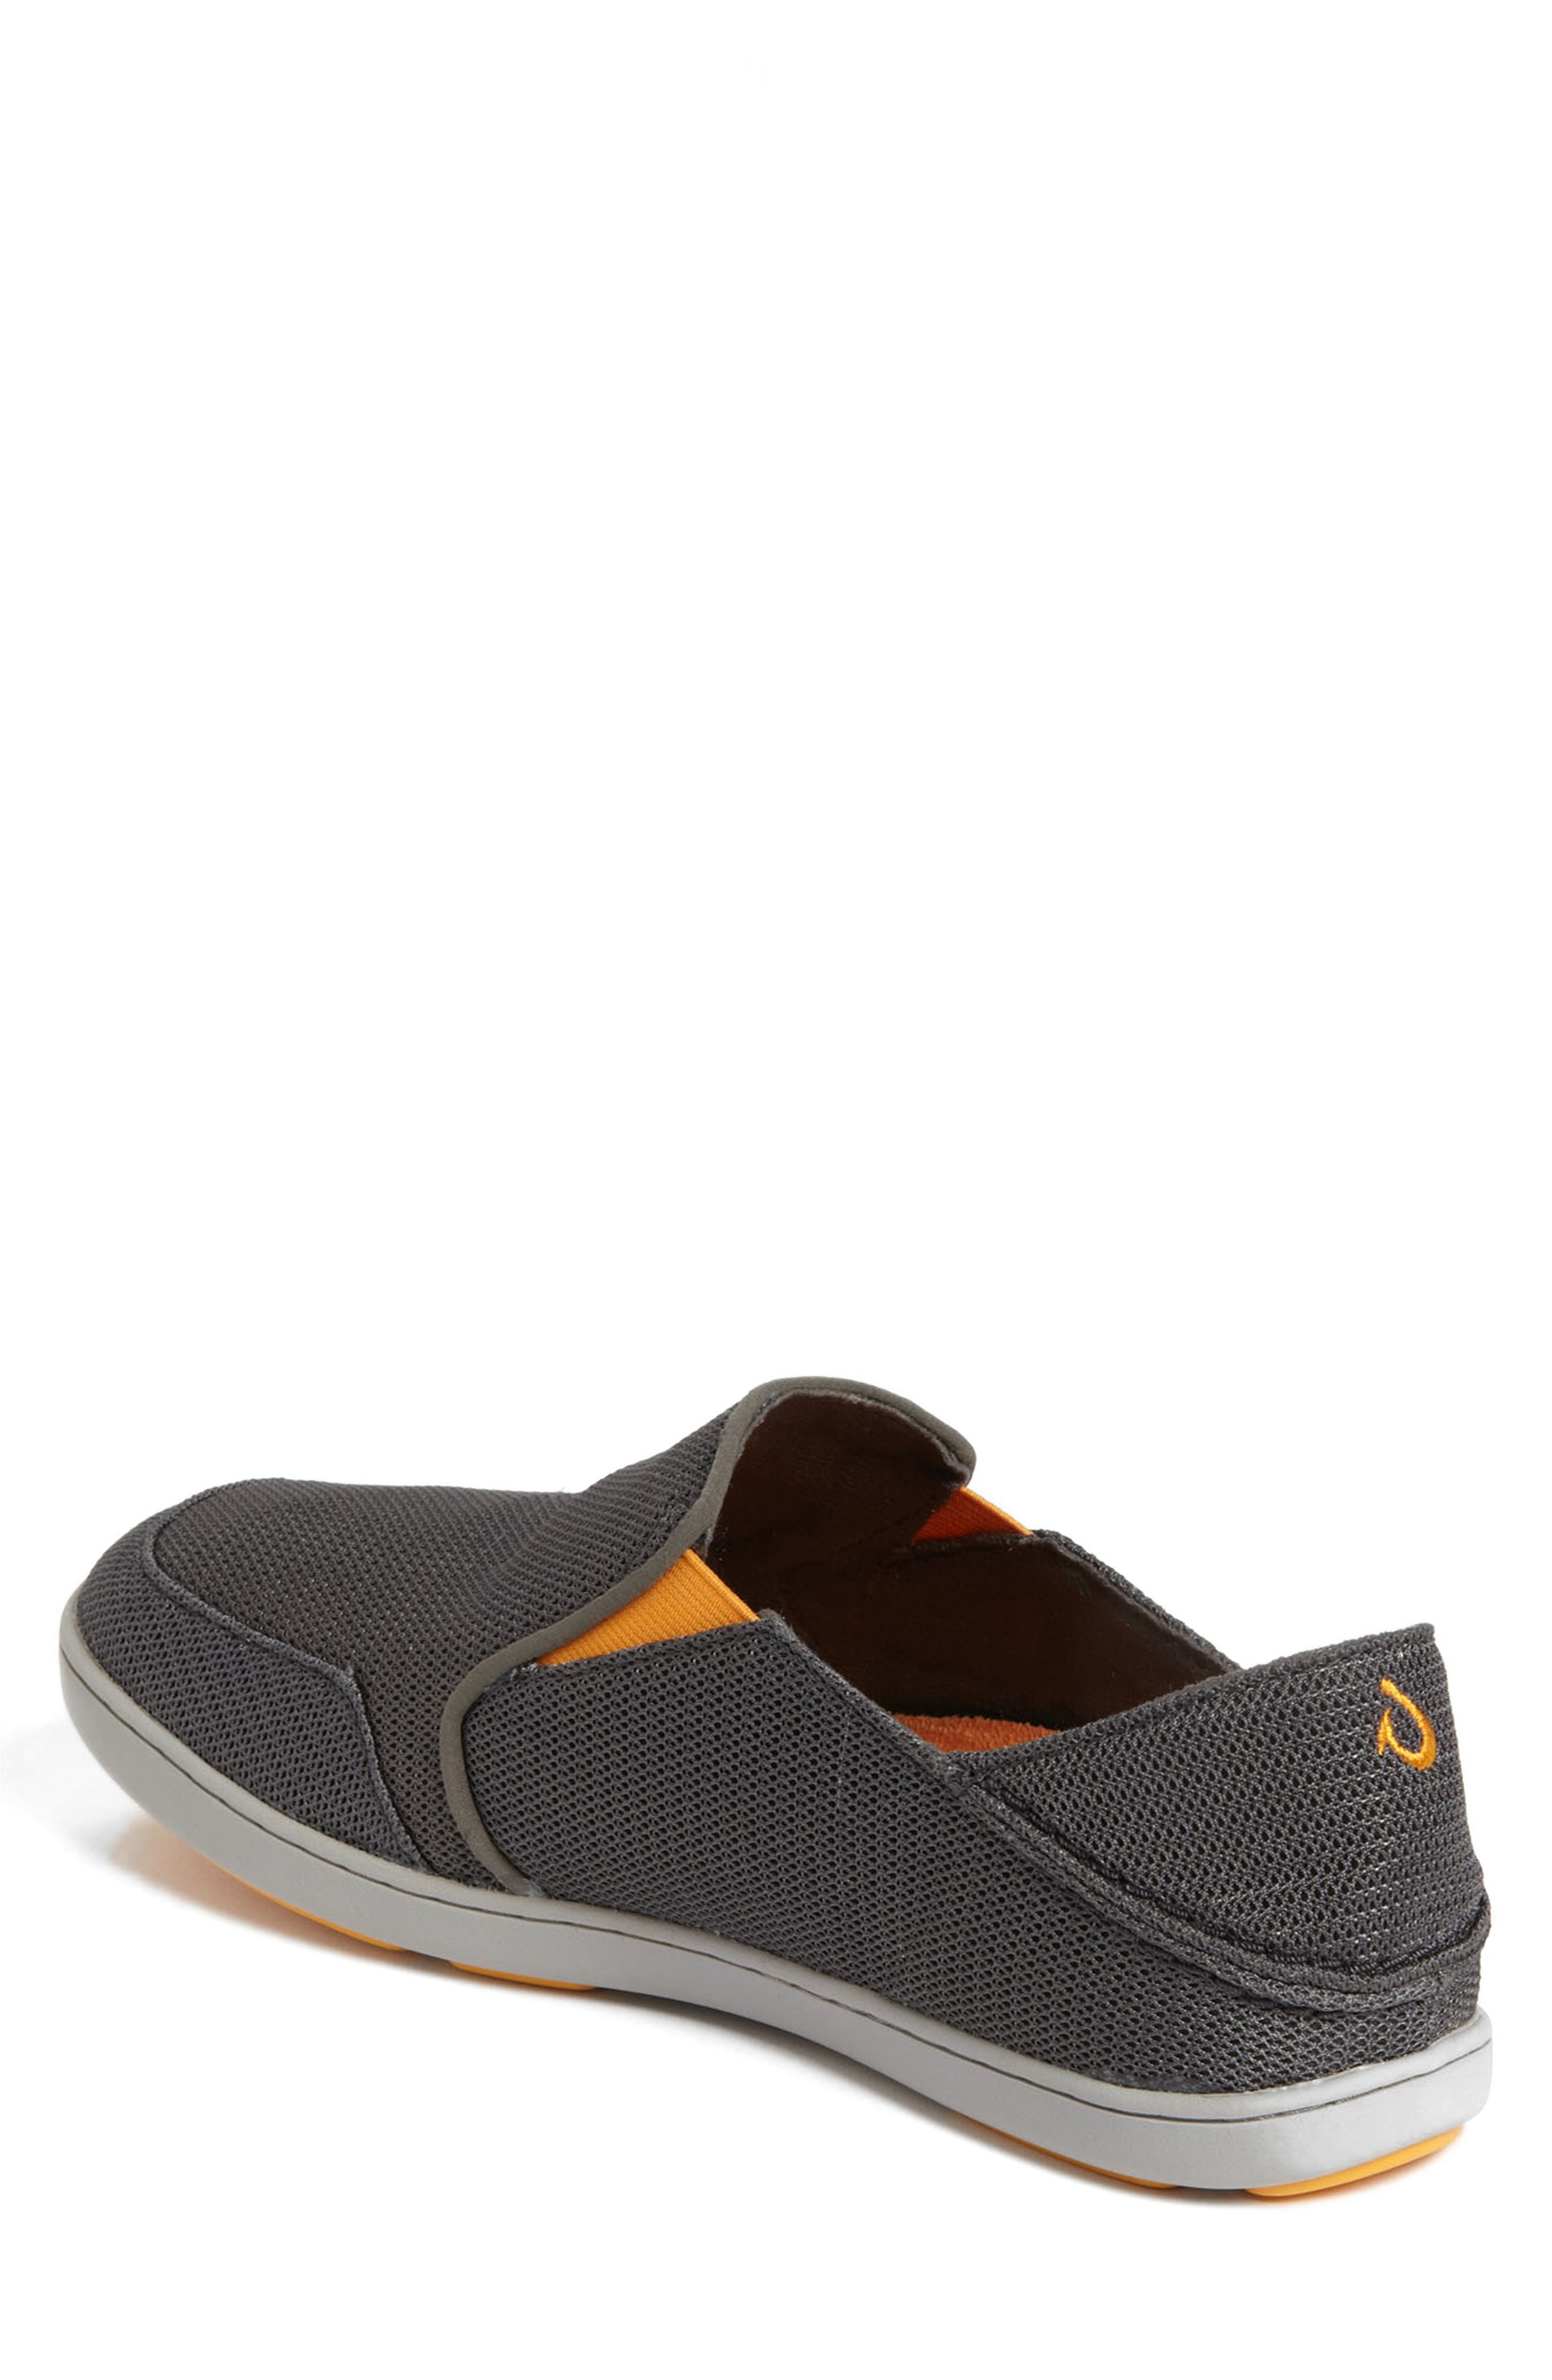 Nohea Mesh Slip-On,                             Alternate thumbnail 2, color,                             DARK SHADOW/ DARK SHADOW